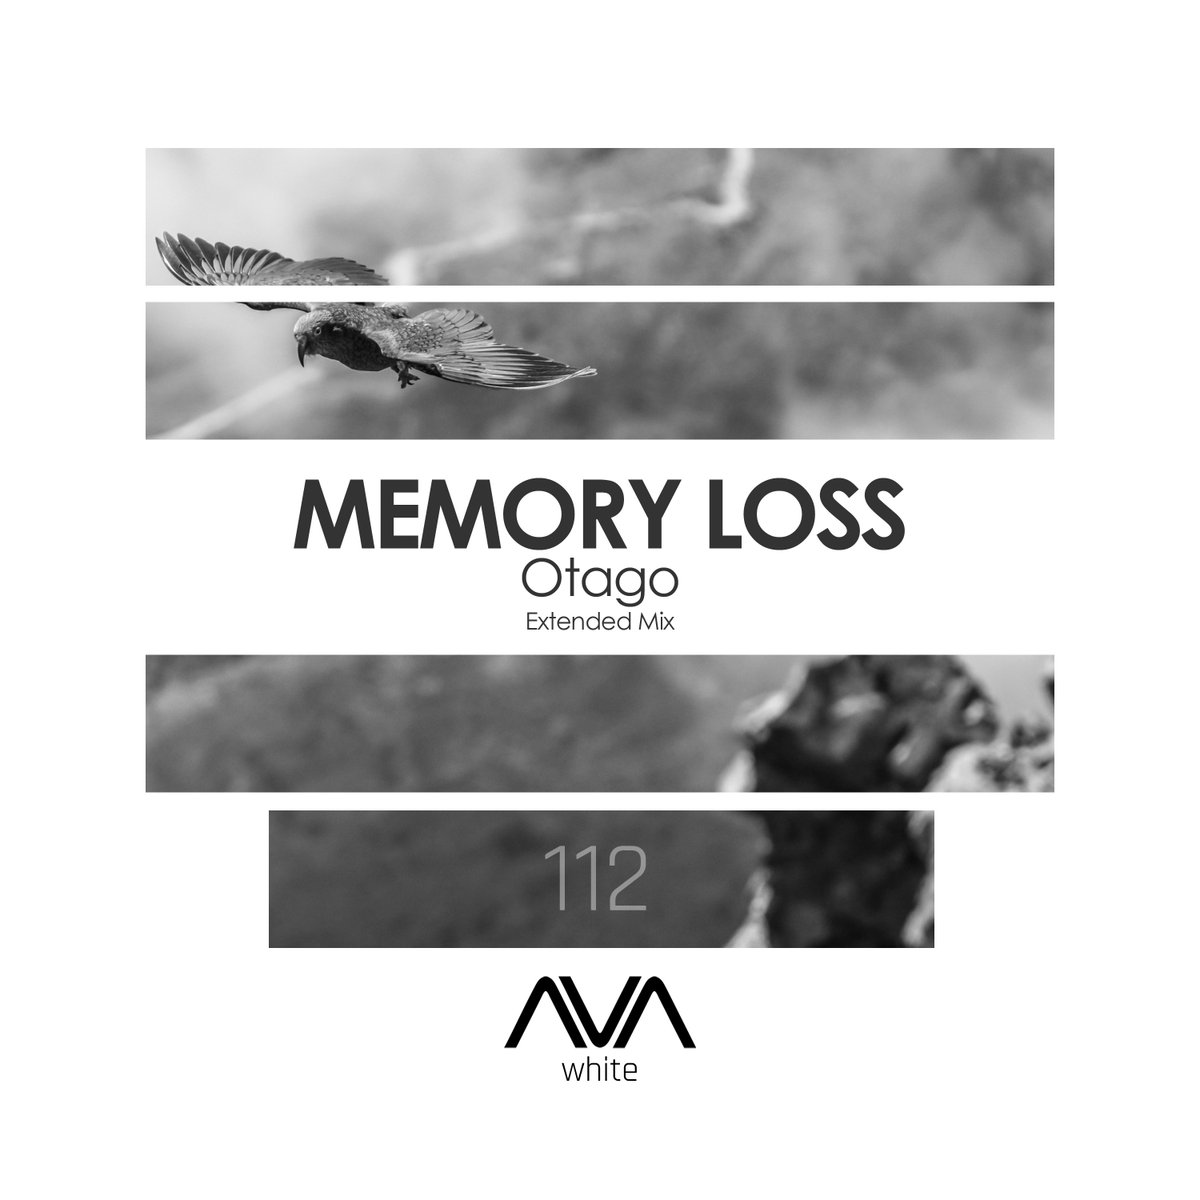 "Thanks for the guest mix @NASHMakesMusic ! We close the show now with @MemoryLossMusic ""Otago"" on @AVARecordings White   @AfterhoursFM"